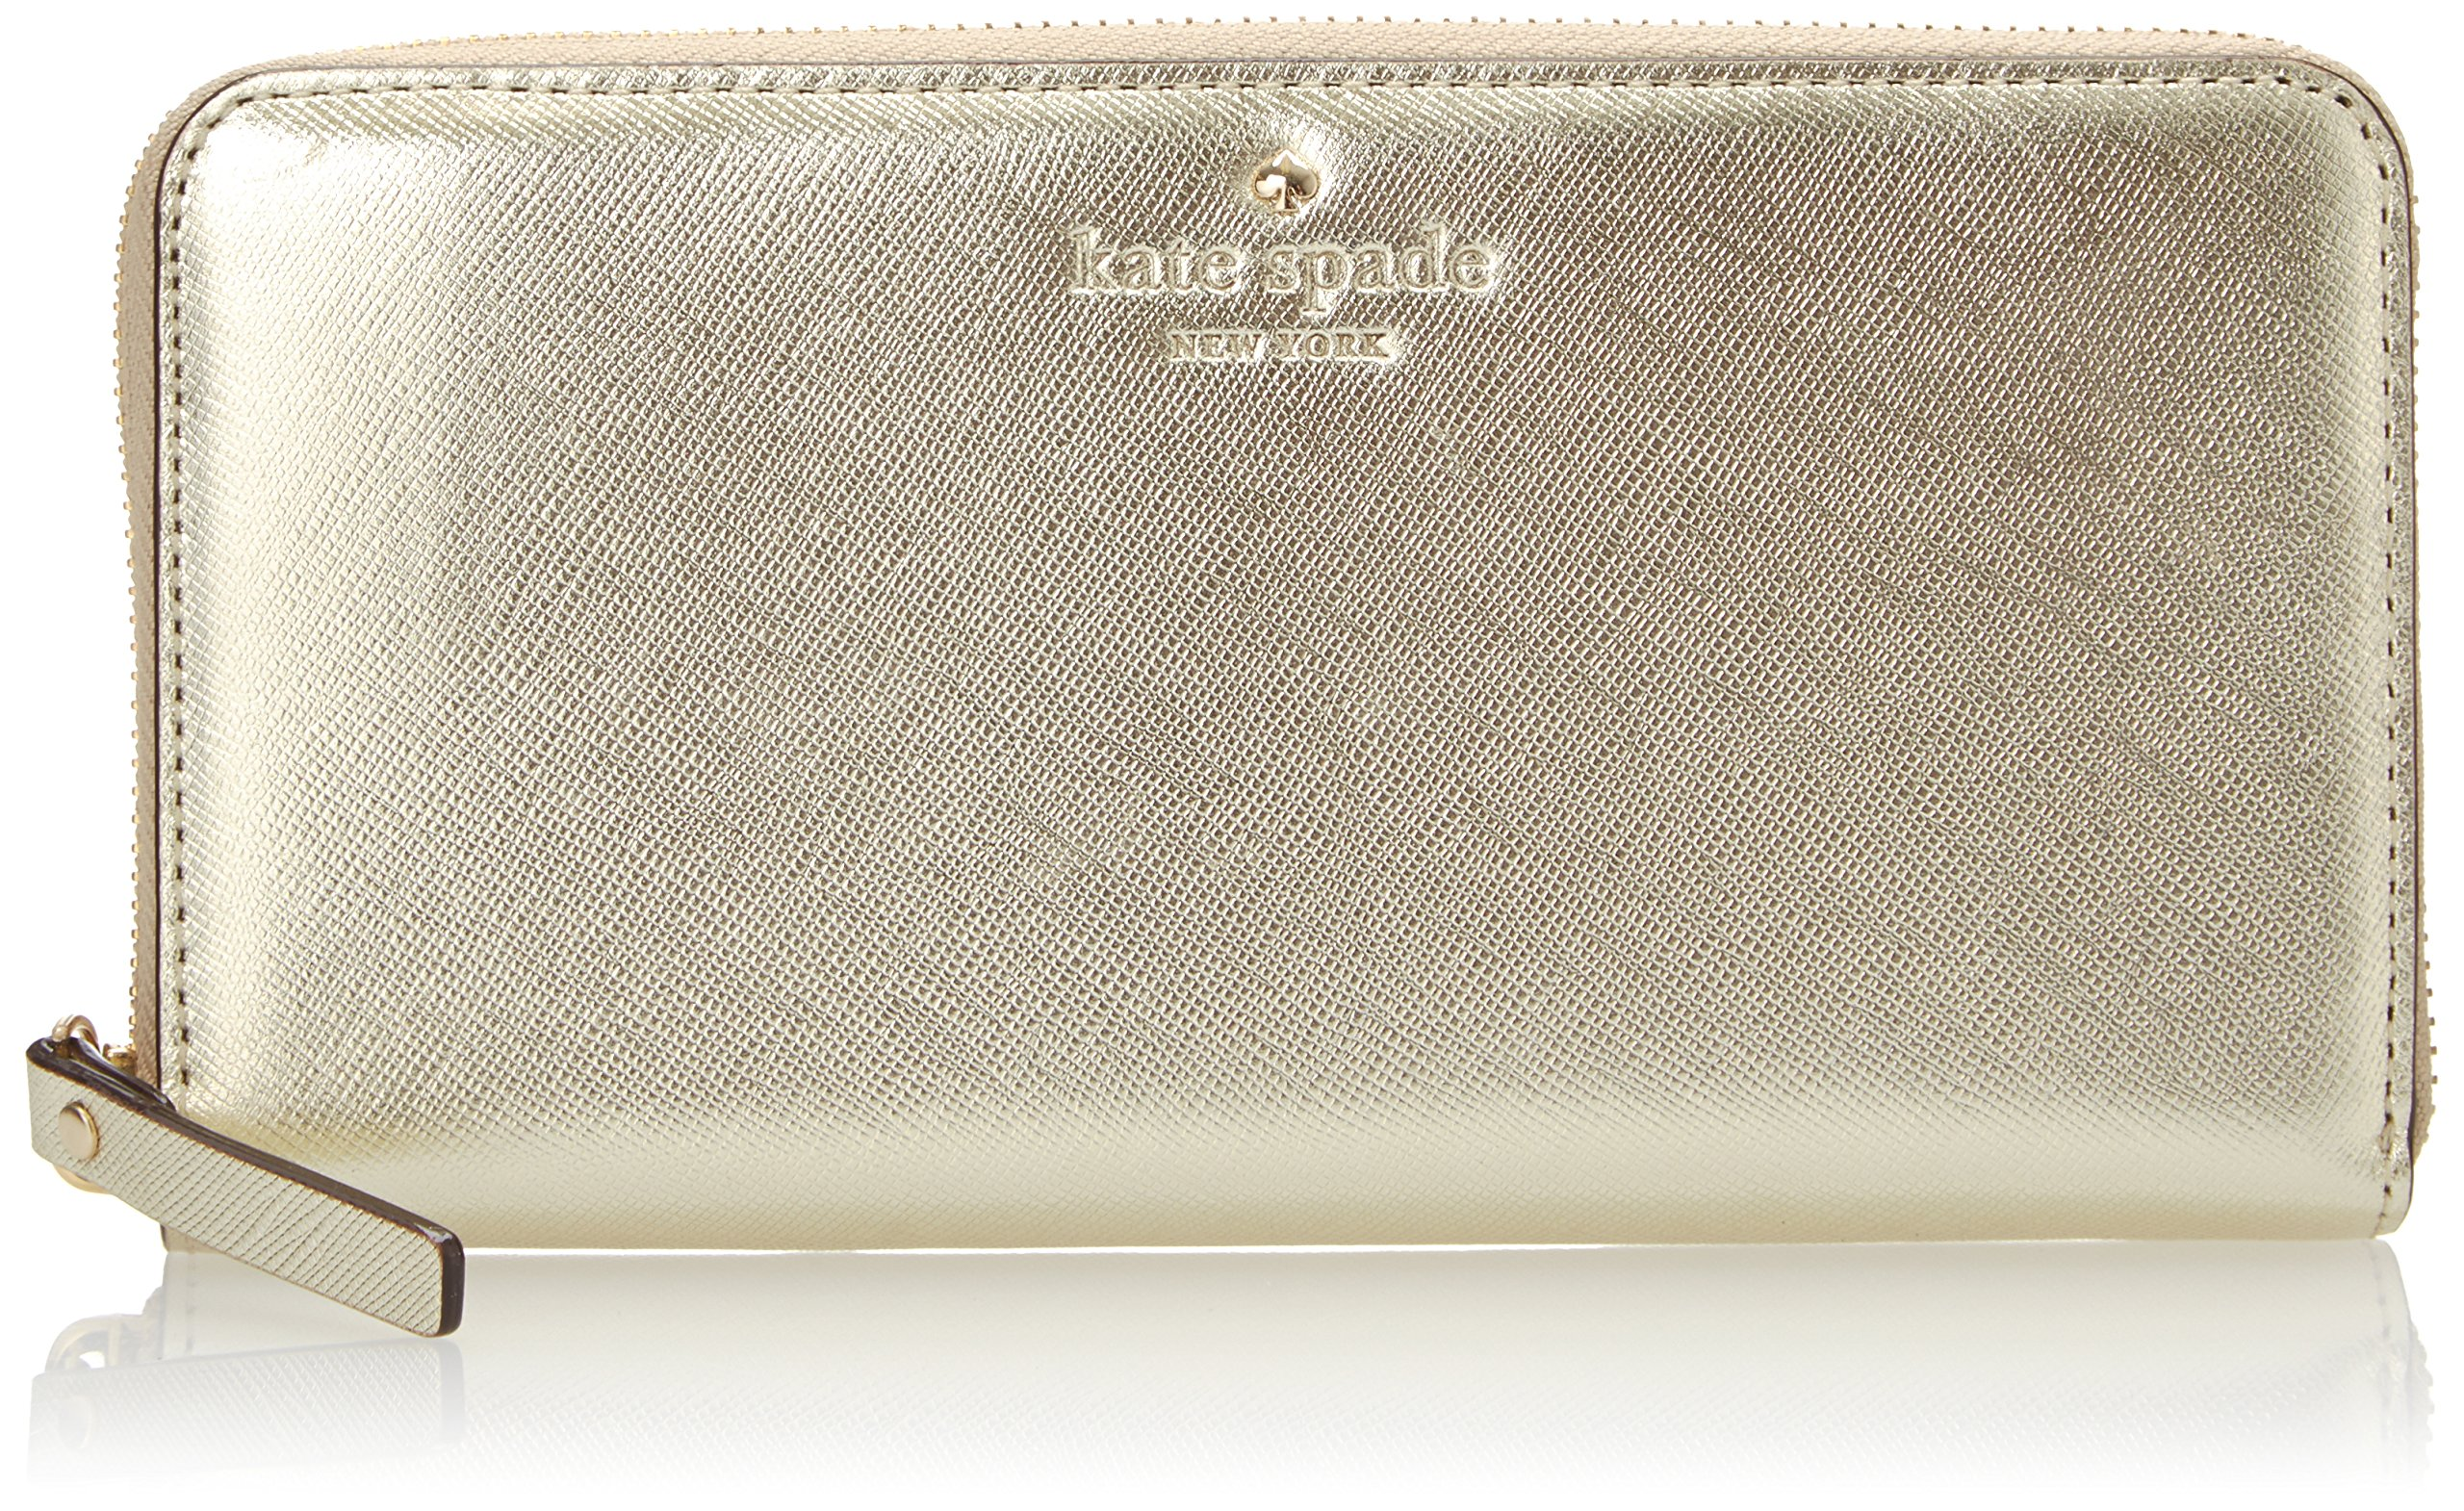 kate spade new york Cedar Street Lacey Wallet, Gold, One Size